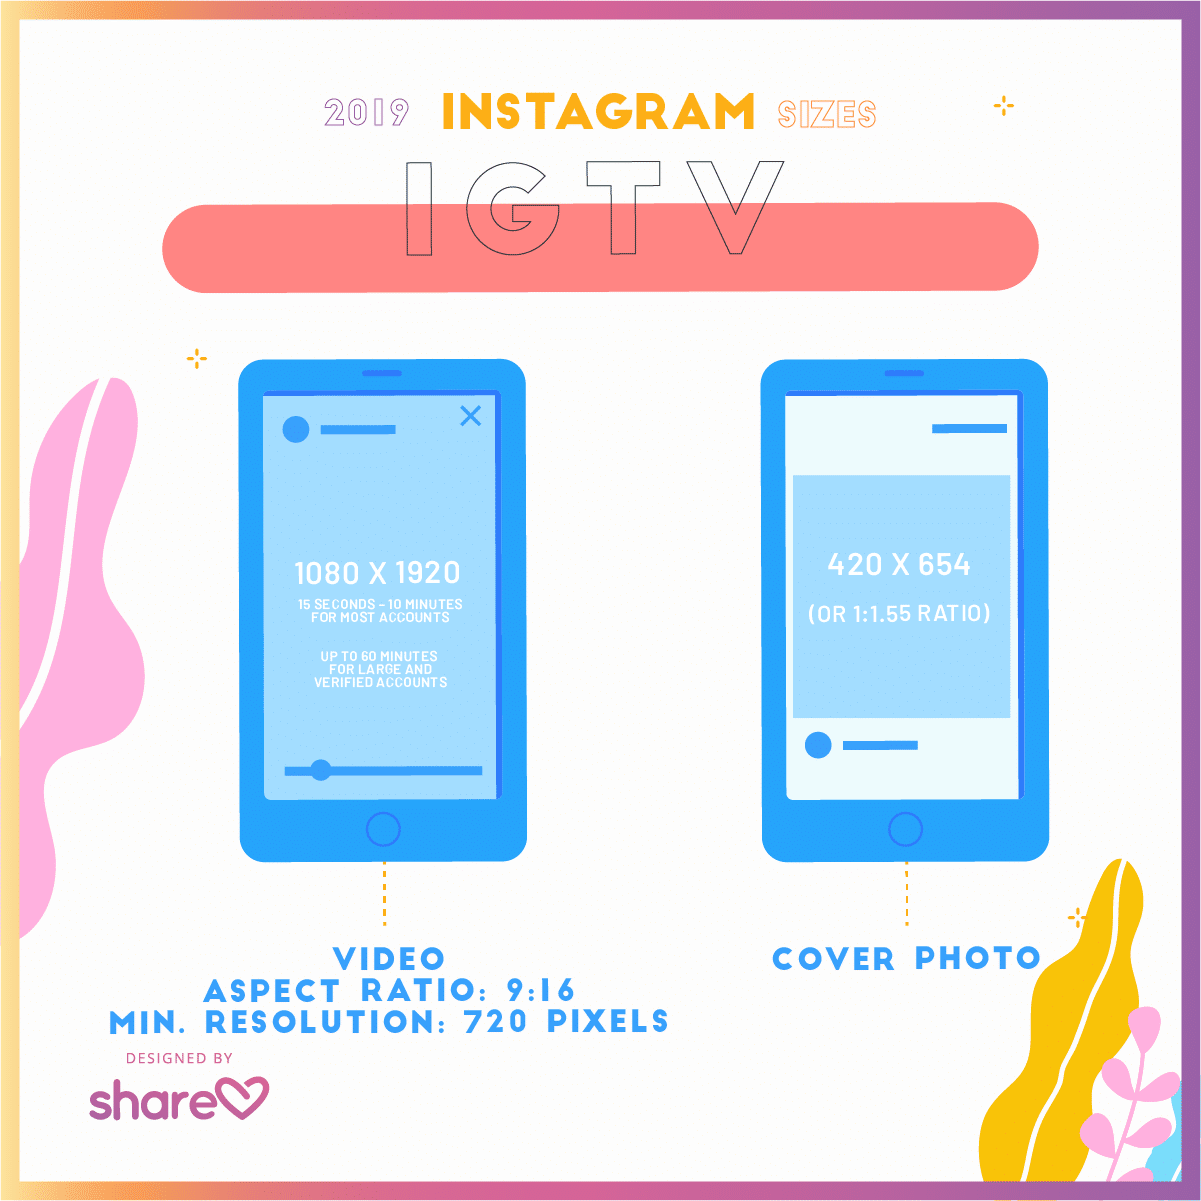 Instagram Images Sizes for 2019 - A Quick-Glance Guide for